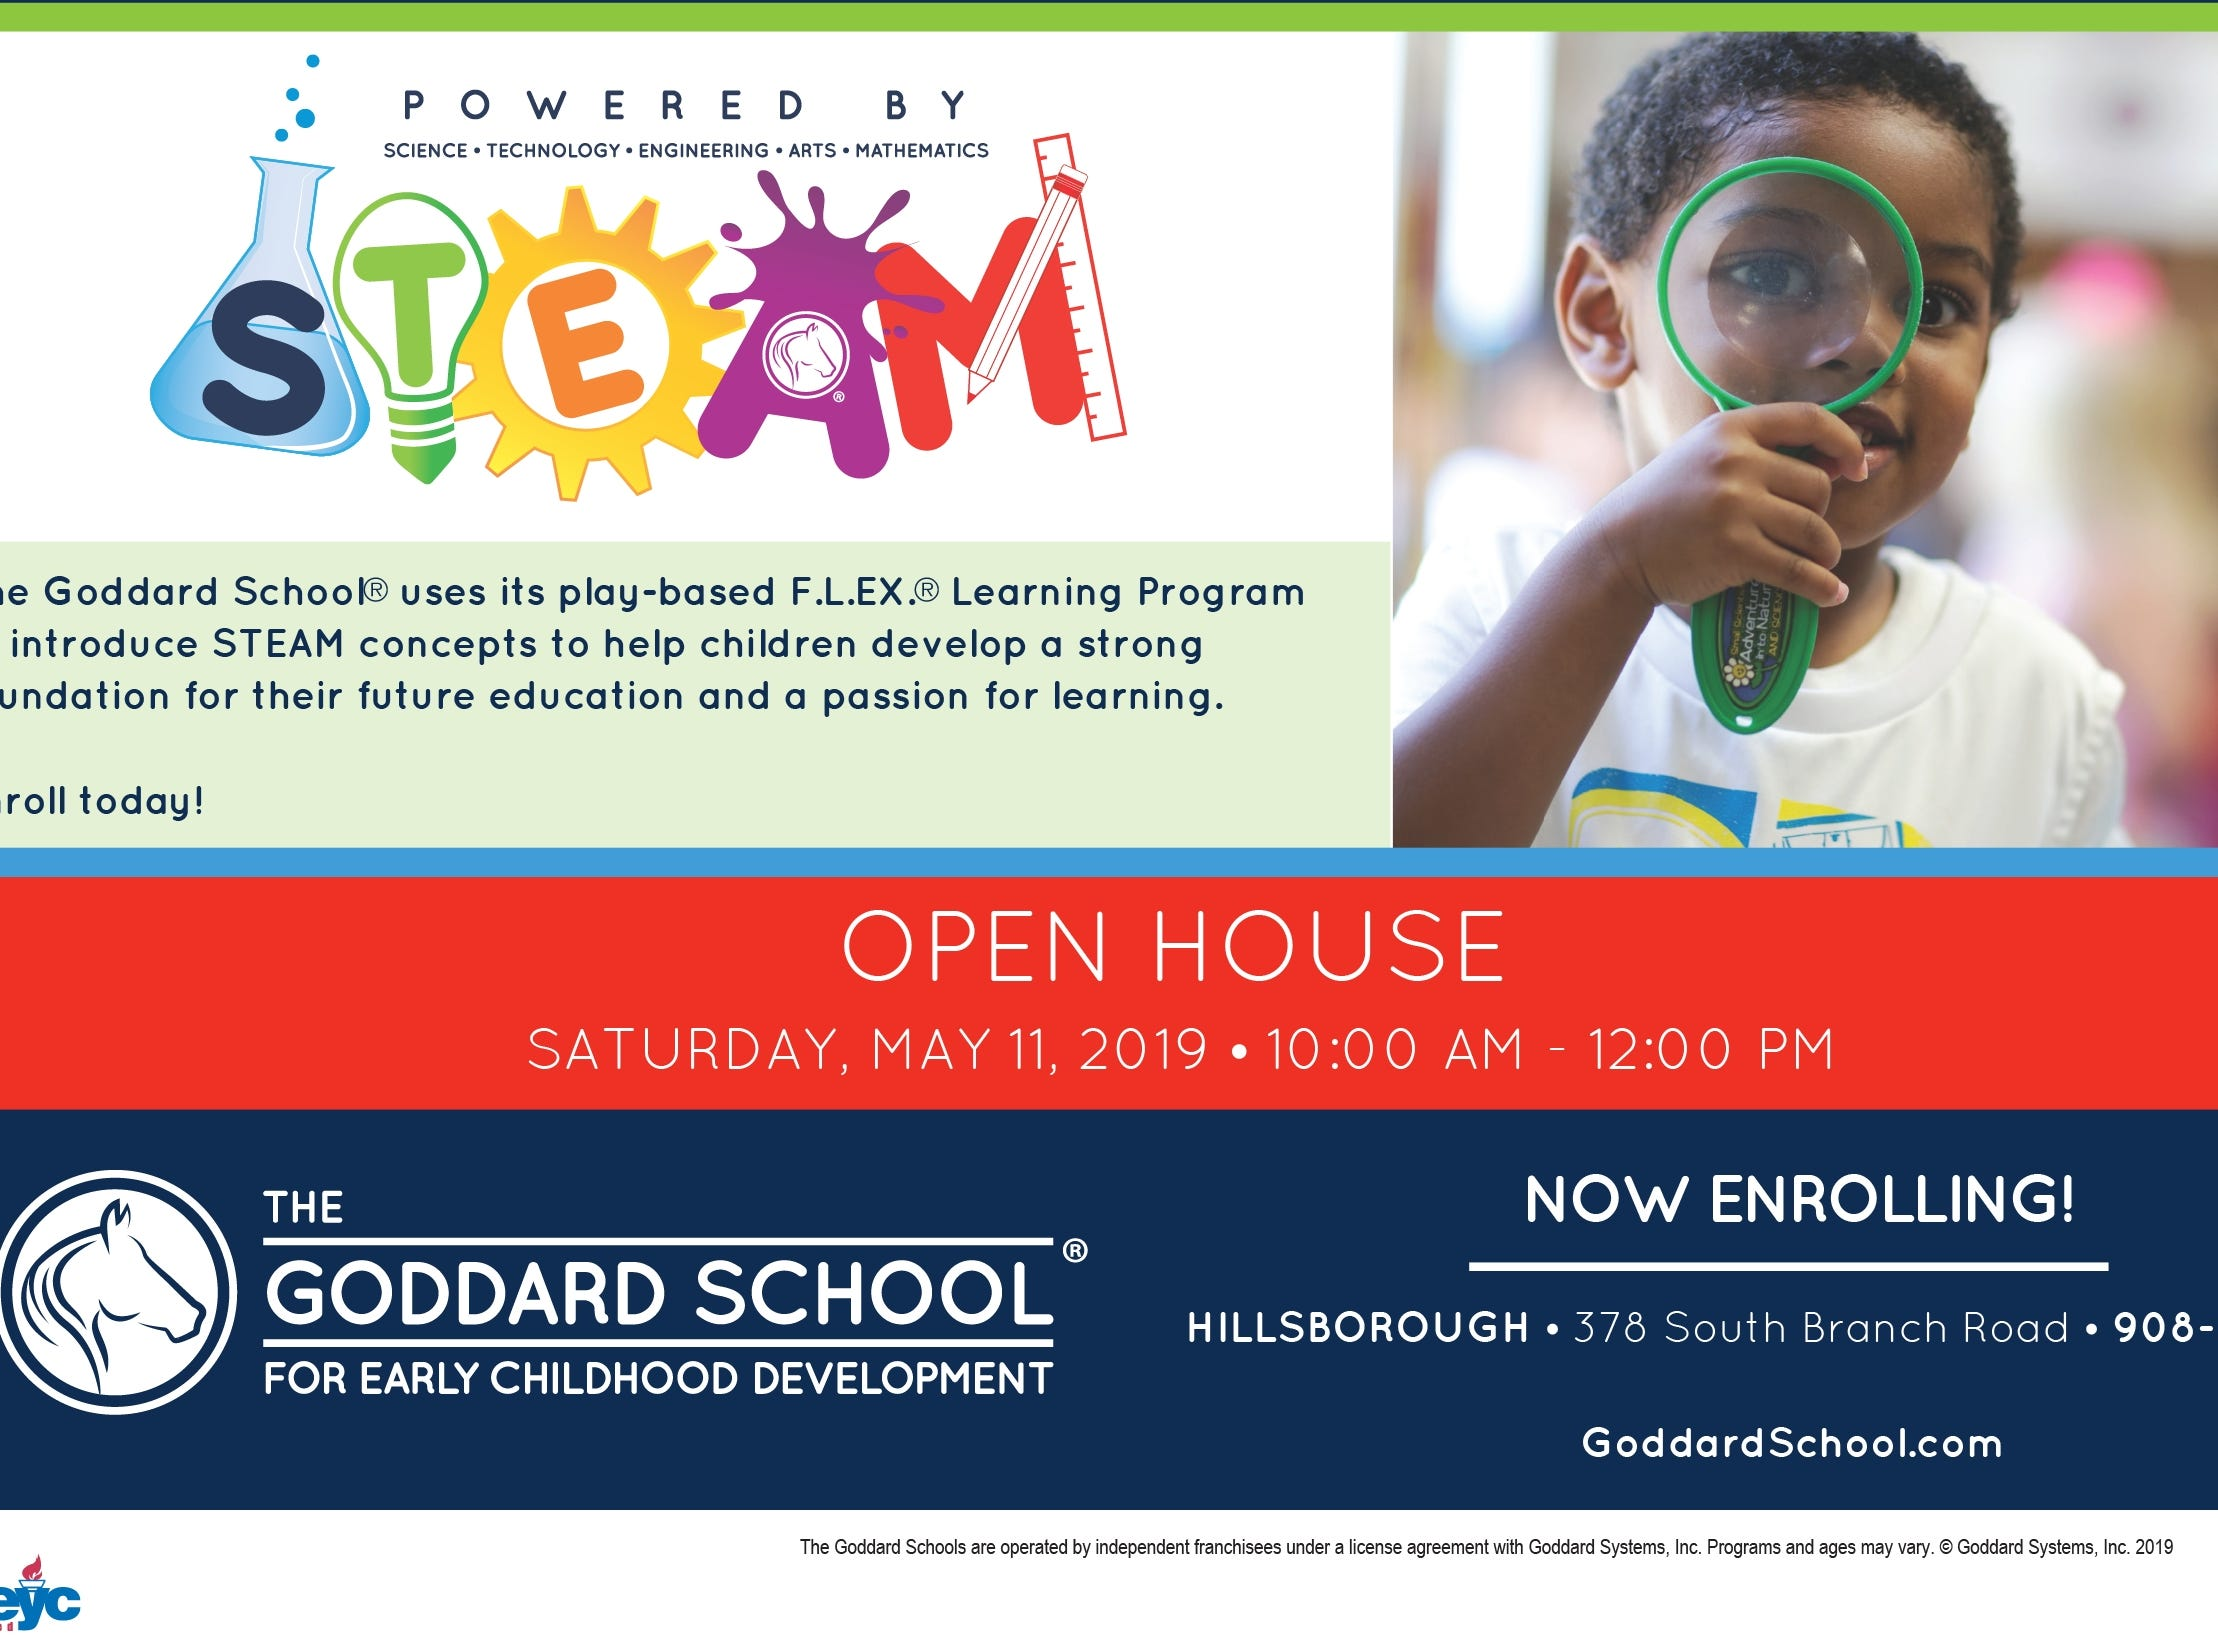 The Goddard School in Hillsborough invites parents and children of all ages to enjoy refreshments and fun including raffles, games, activities and crafts on Saturday, May 11, at a STEAM Open House.